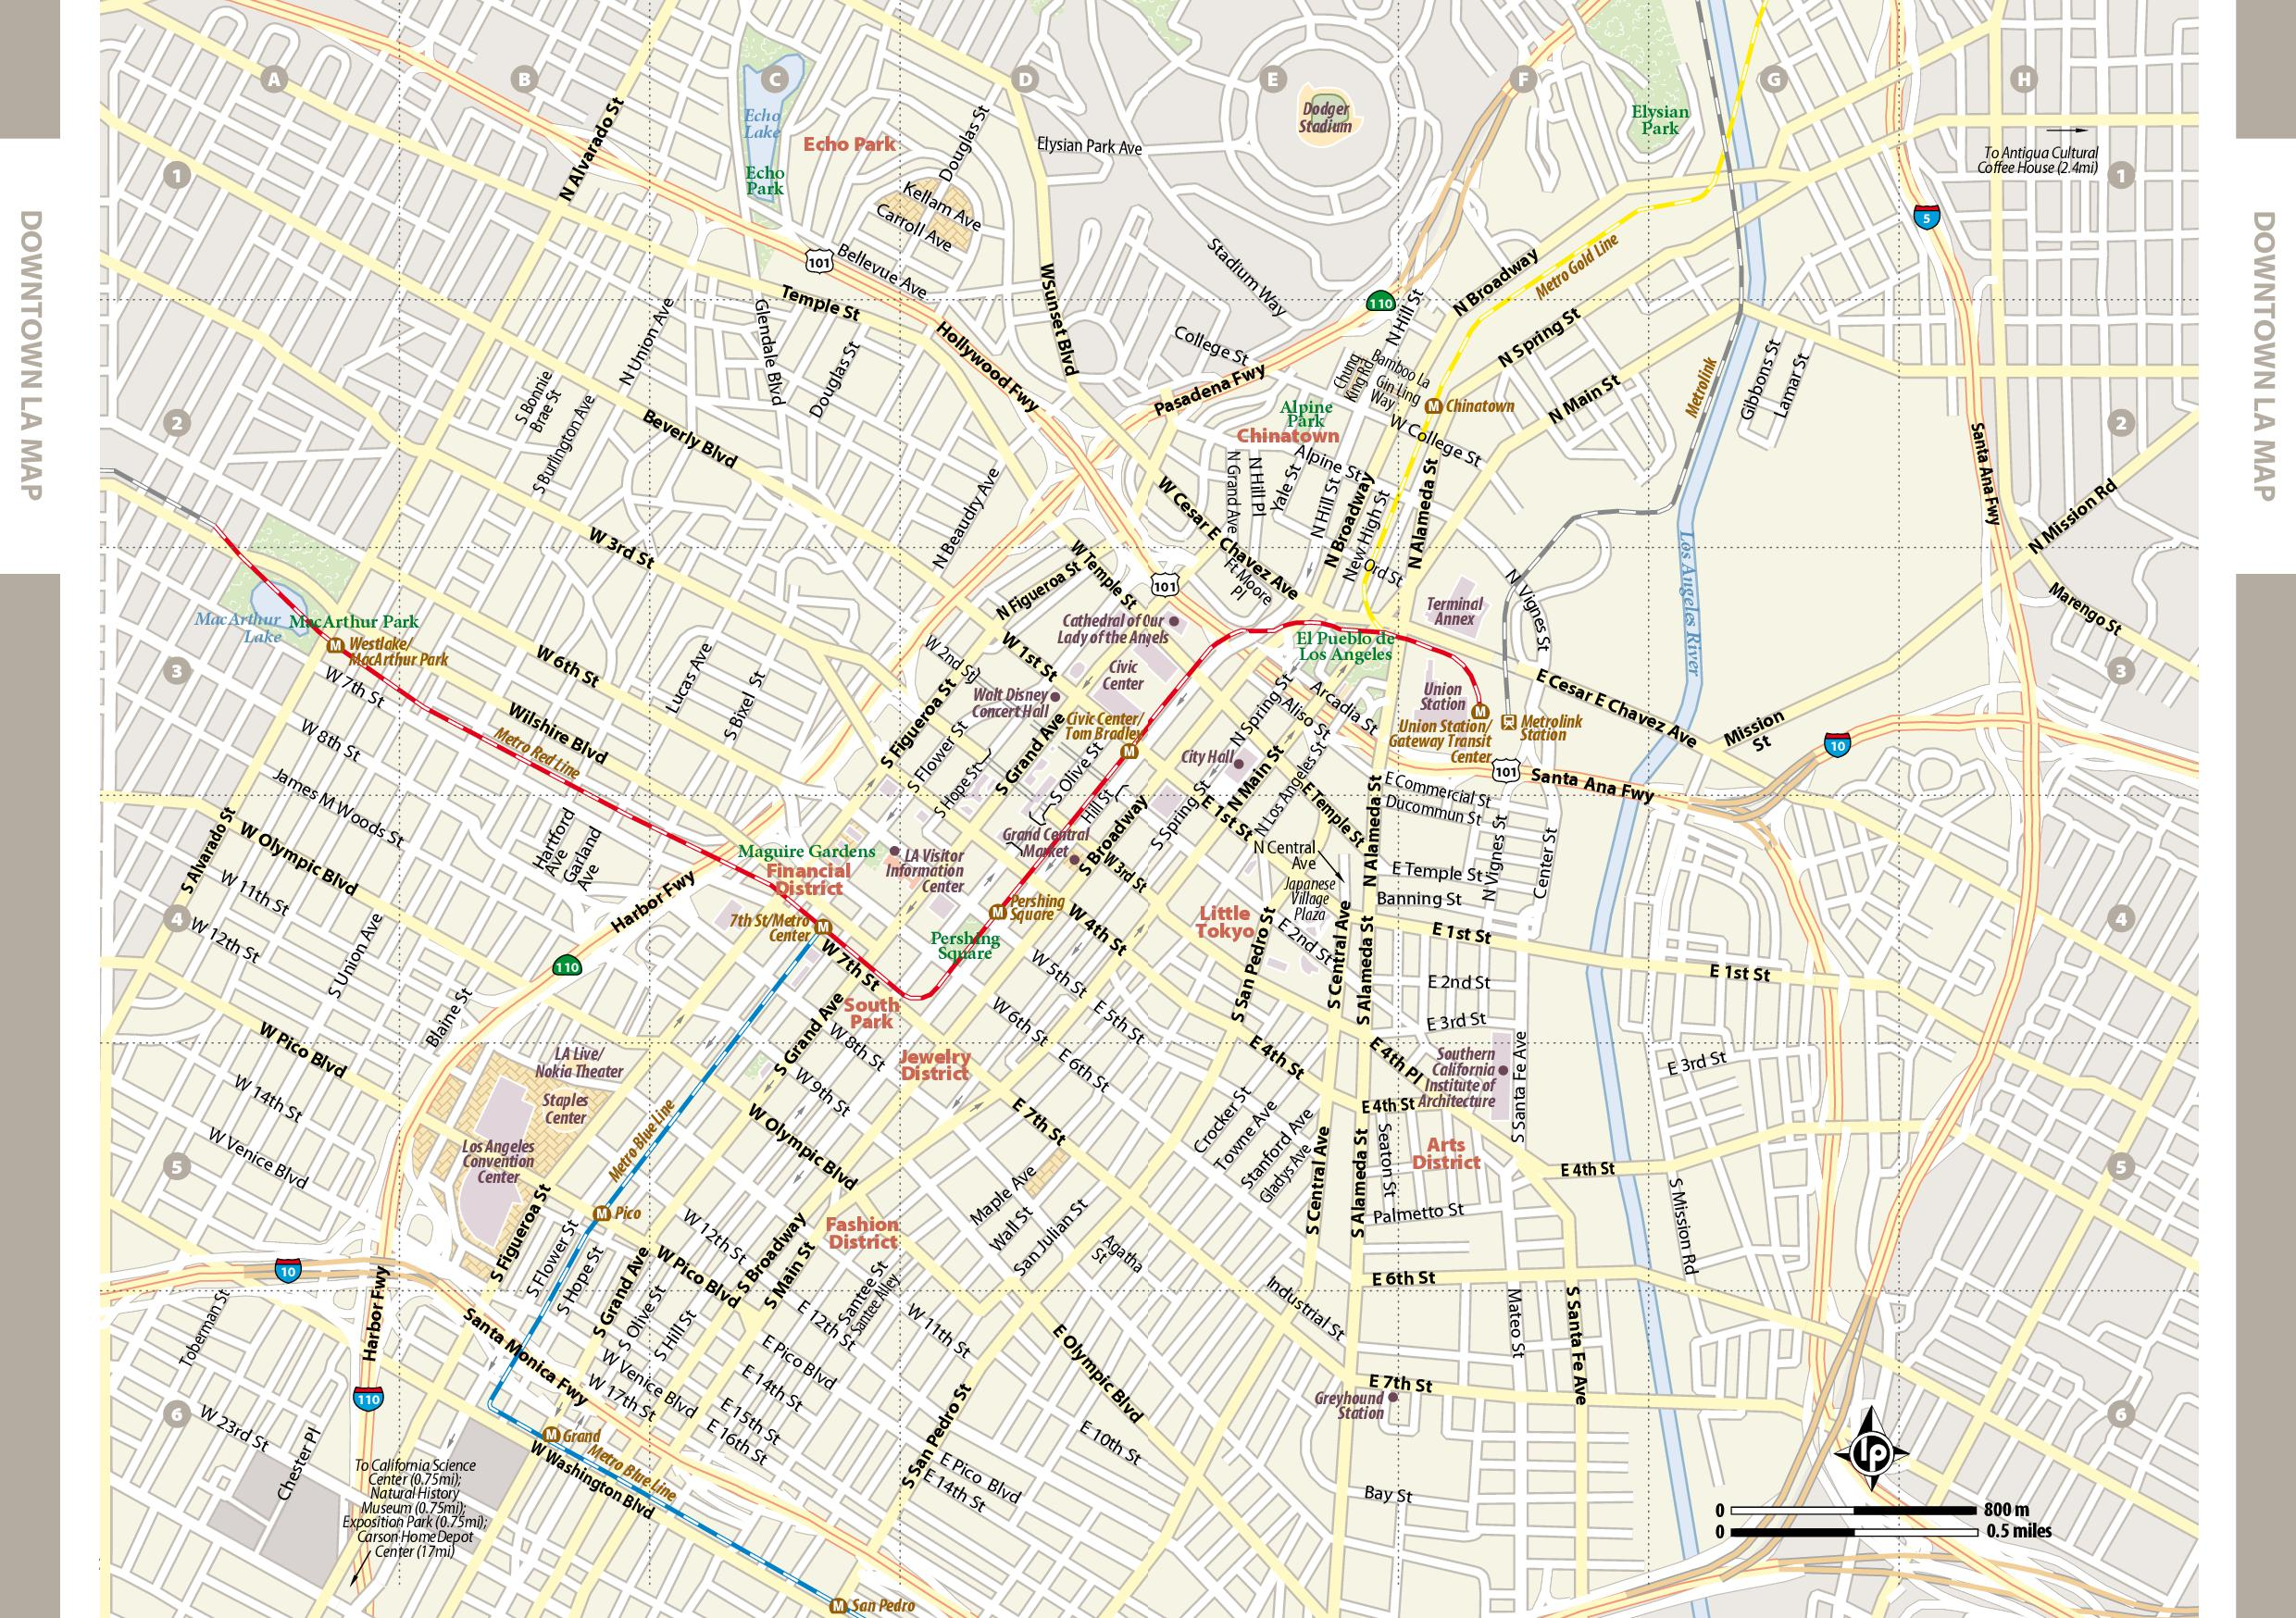 Map Of Downtown Los Angeles Large Los Angeles Maps for Free Download and Print | High